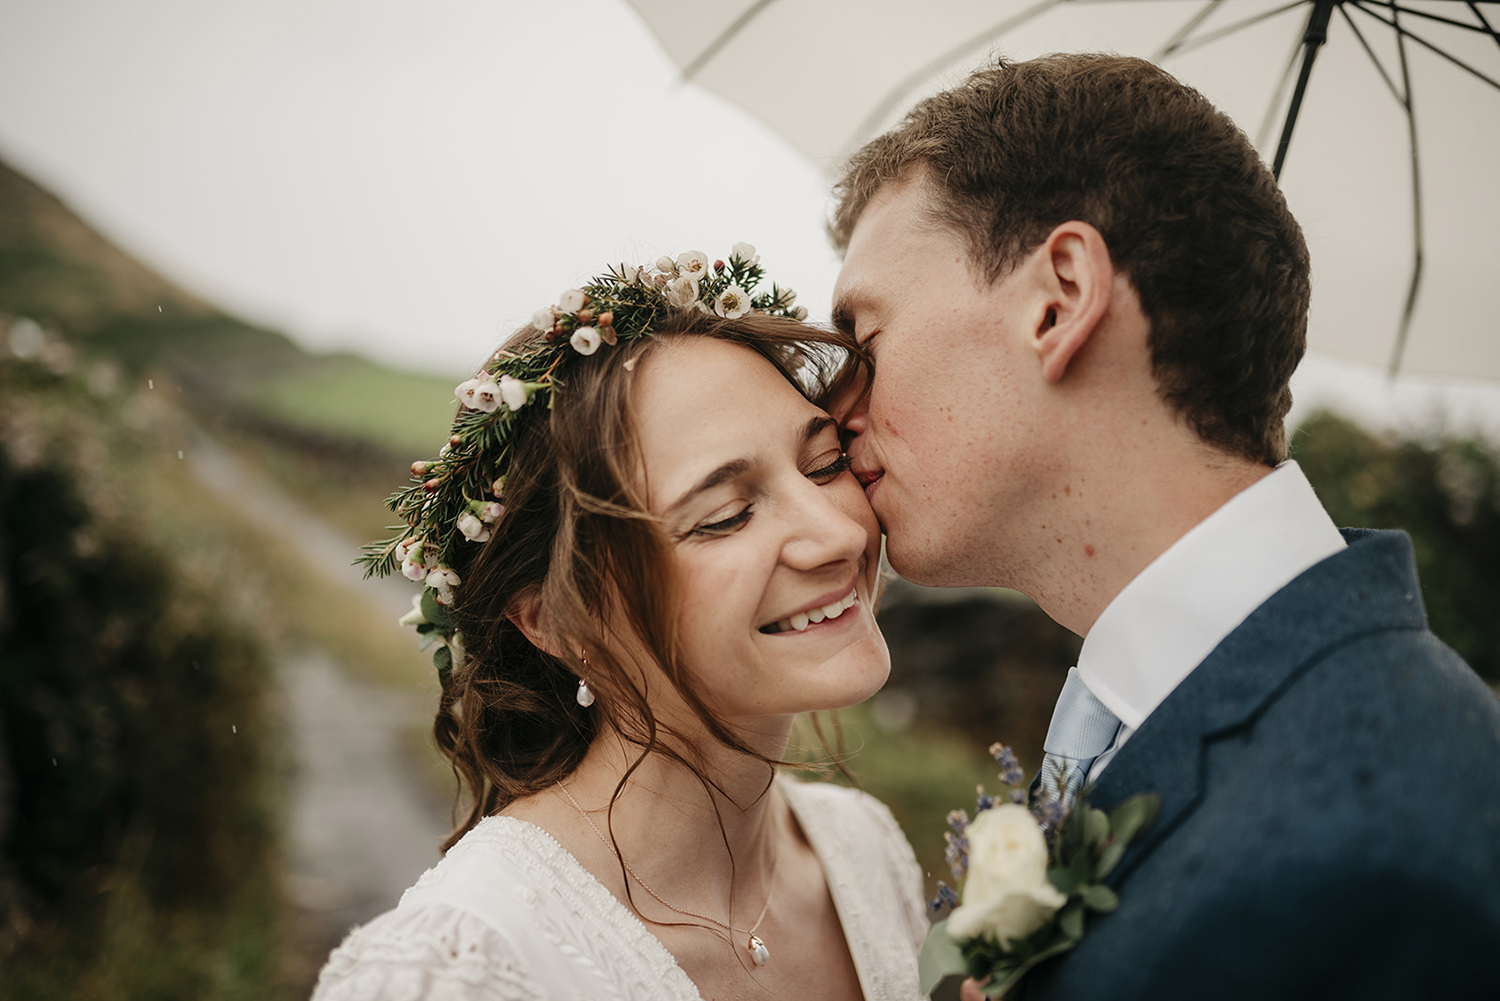 Destination wedding from London to Isle of Man